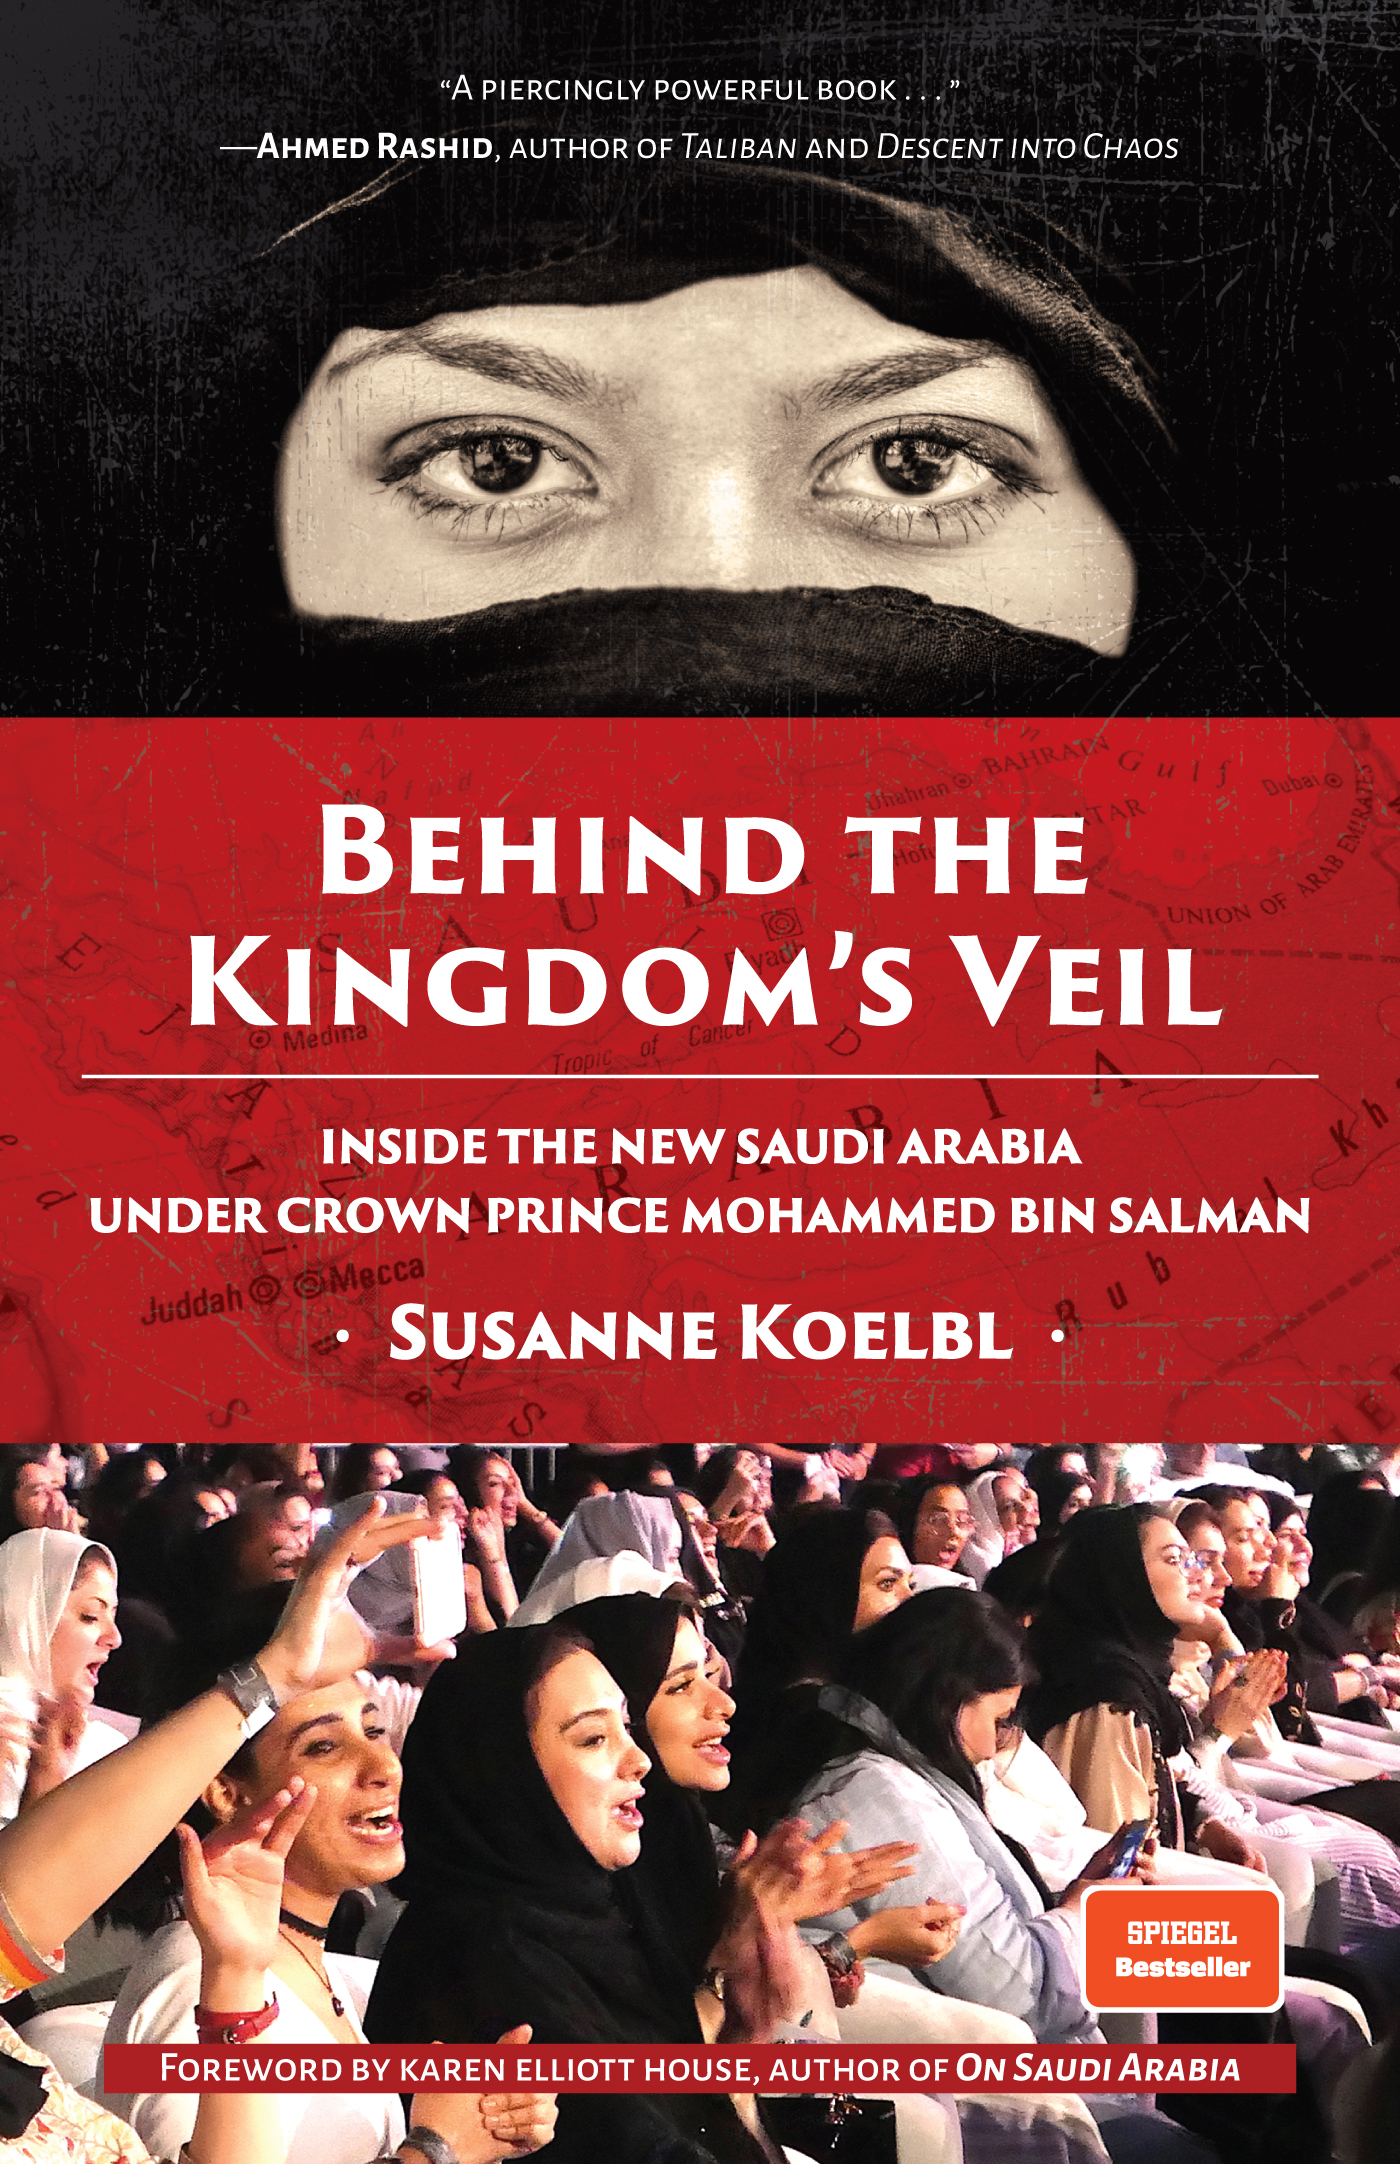 Behind the Kingdom's Veil